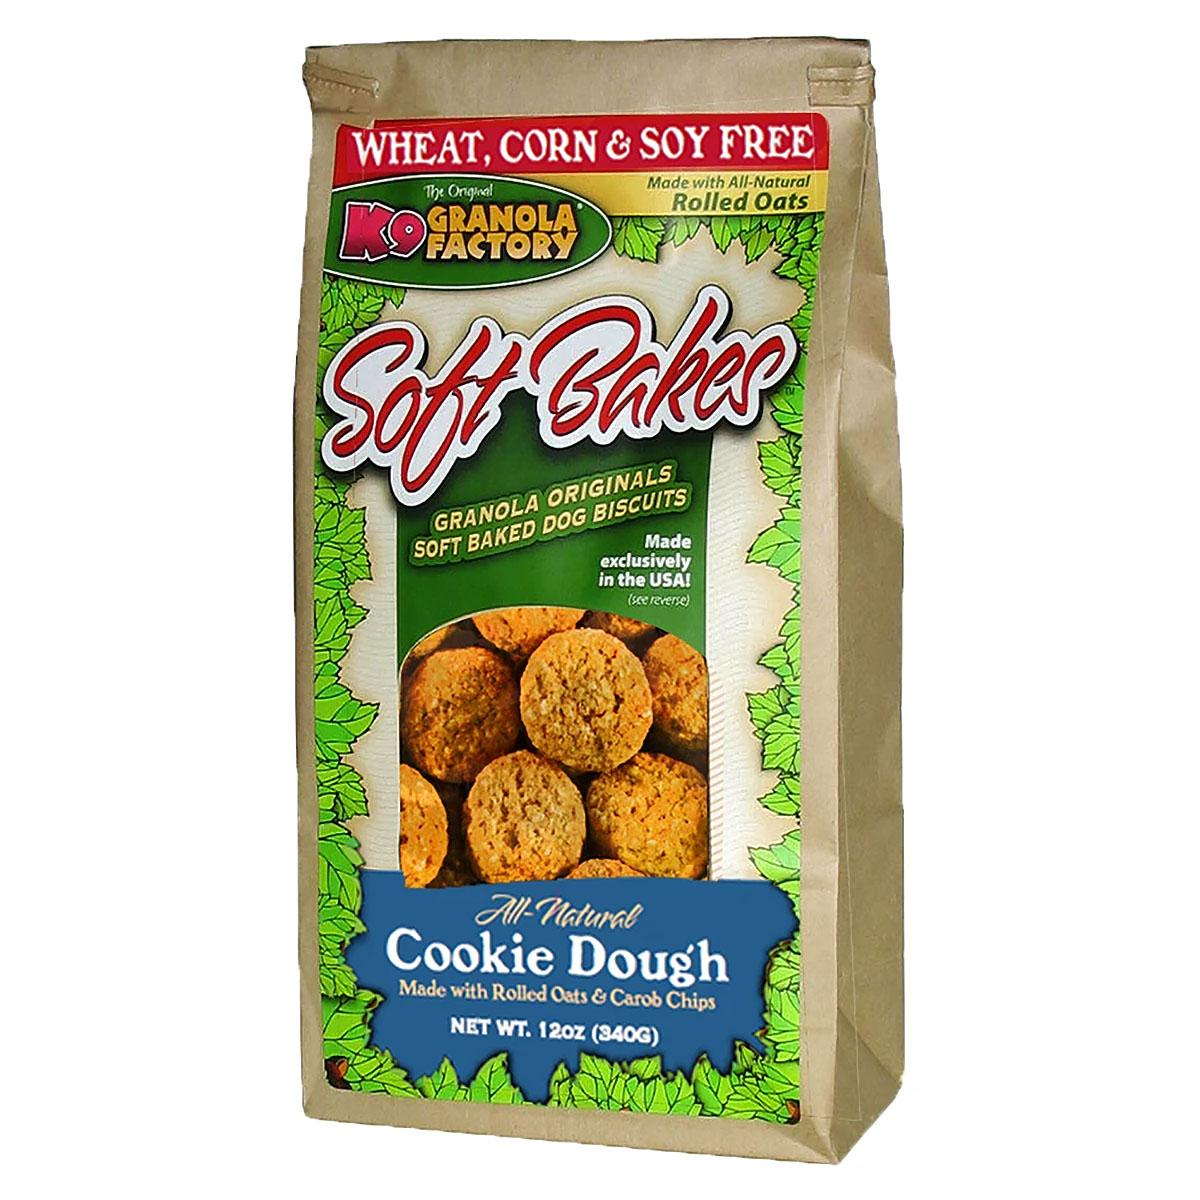 K9 Granola Factory Soft Bakes Dog Treat - Cookie Dough